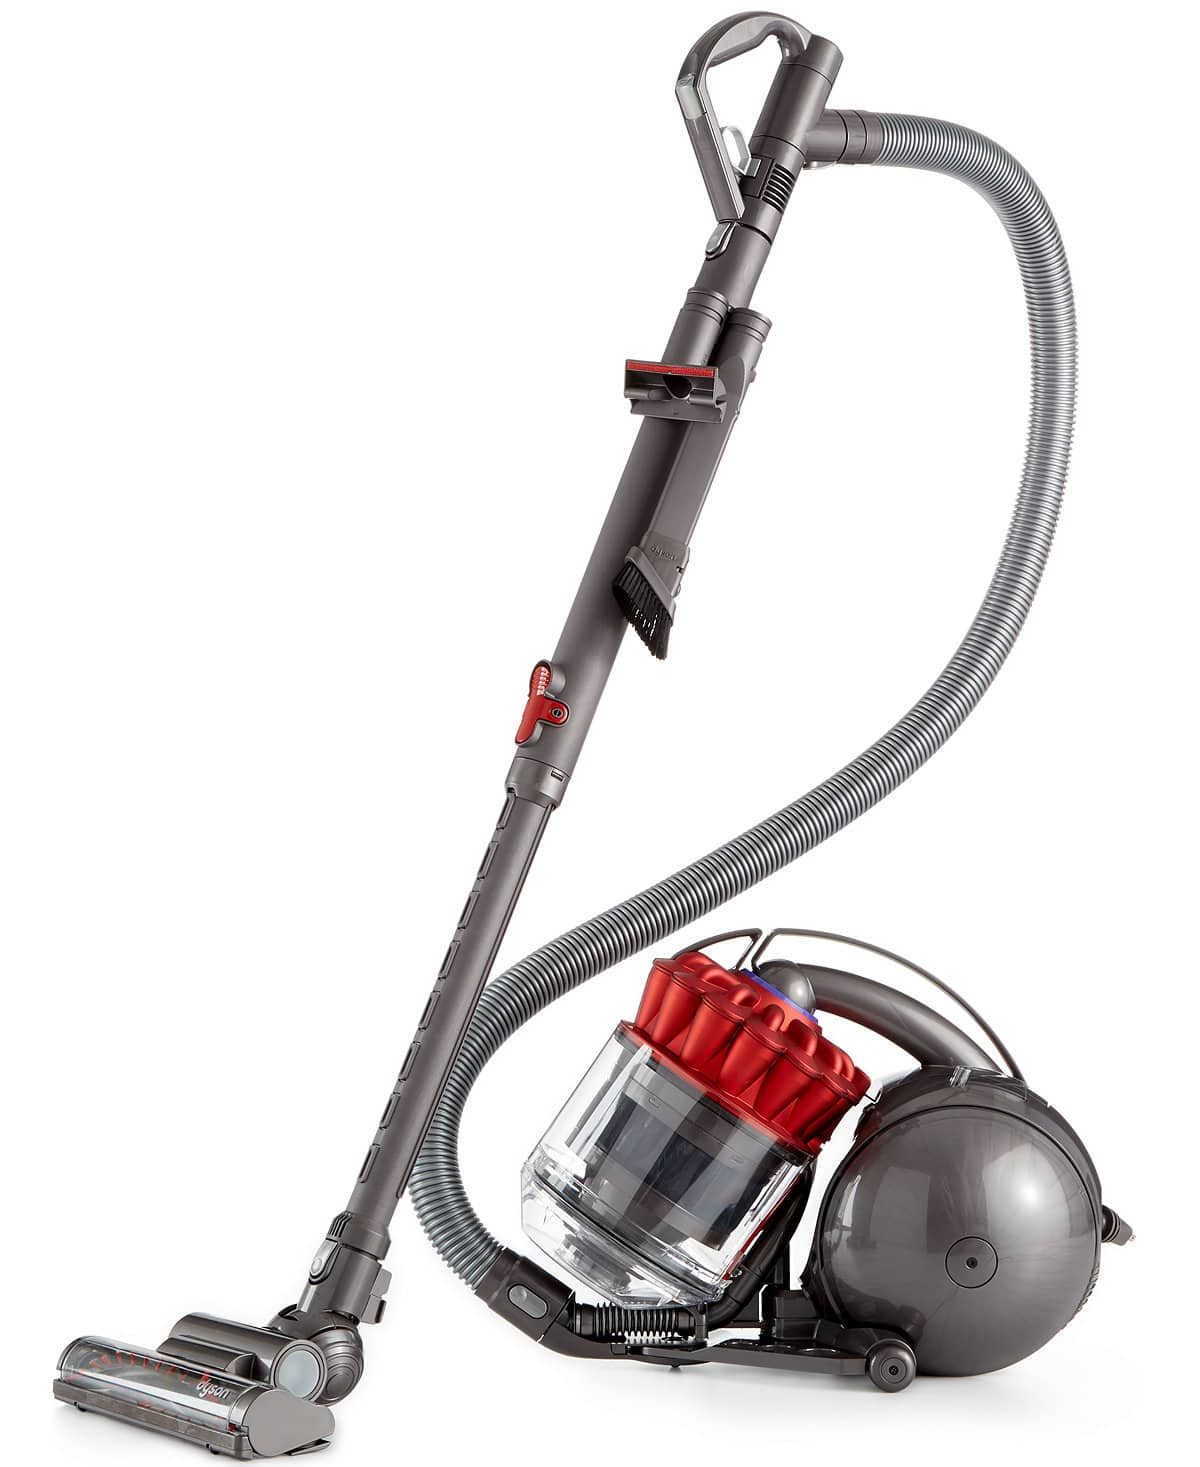 Dyson DC39 Ball Multifloor Pro Canister Vacuum - $199.99